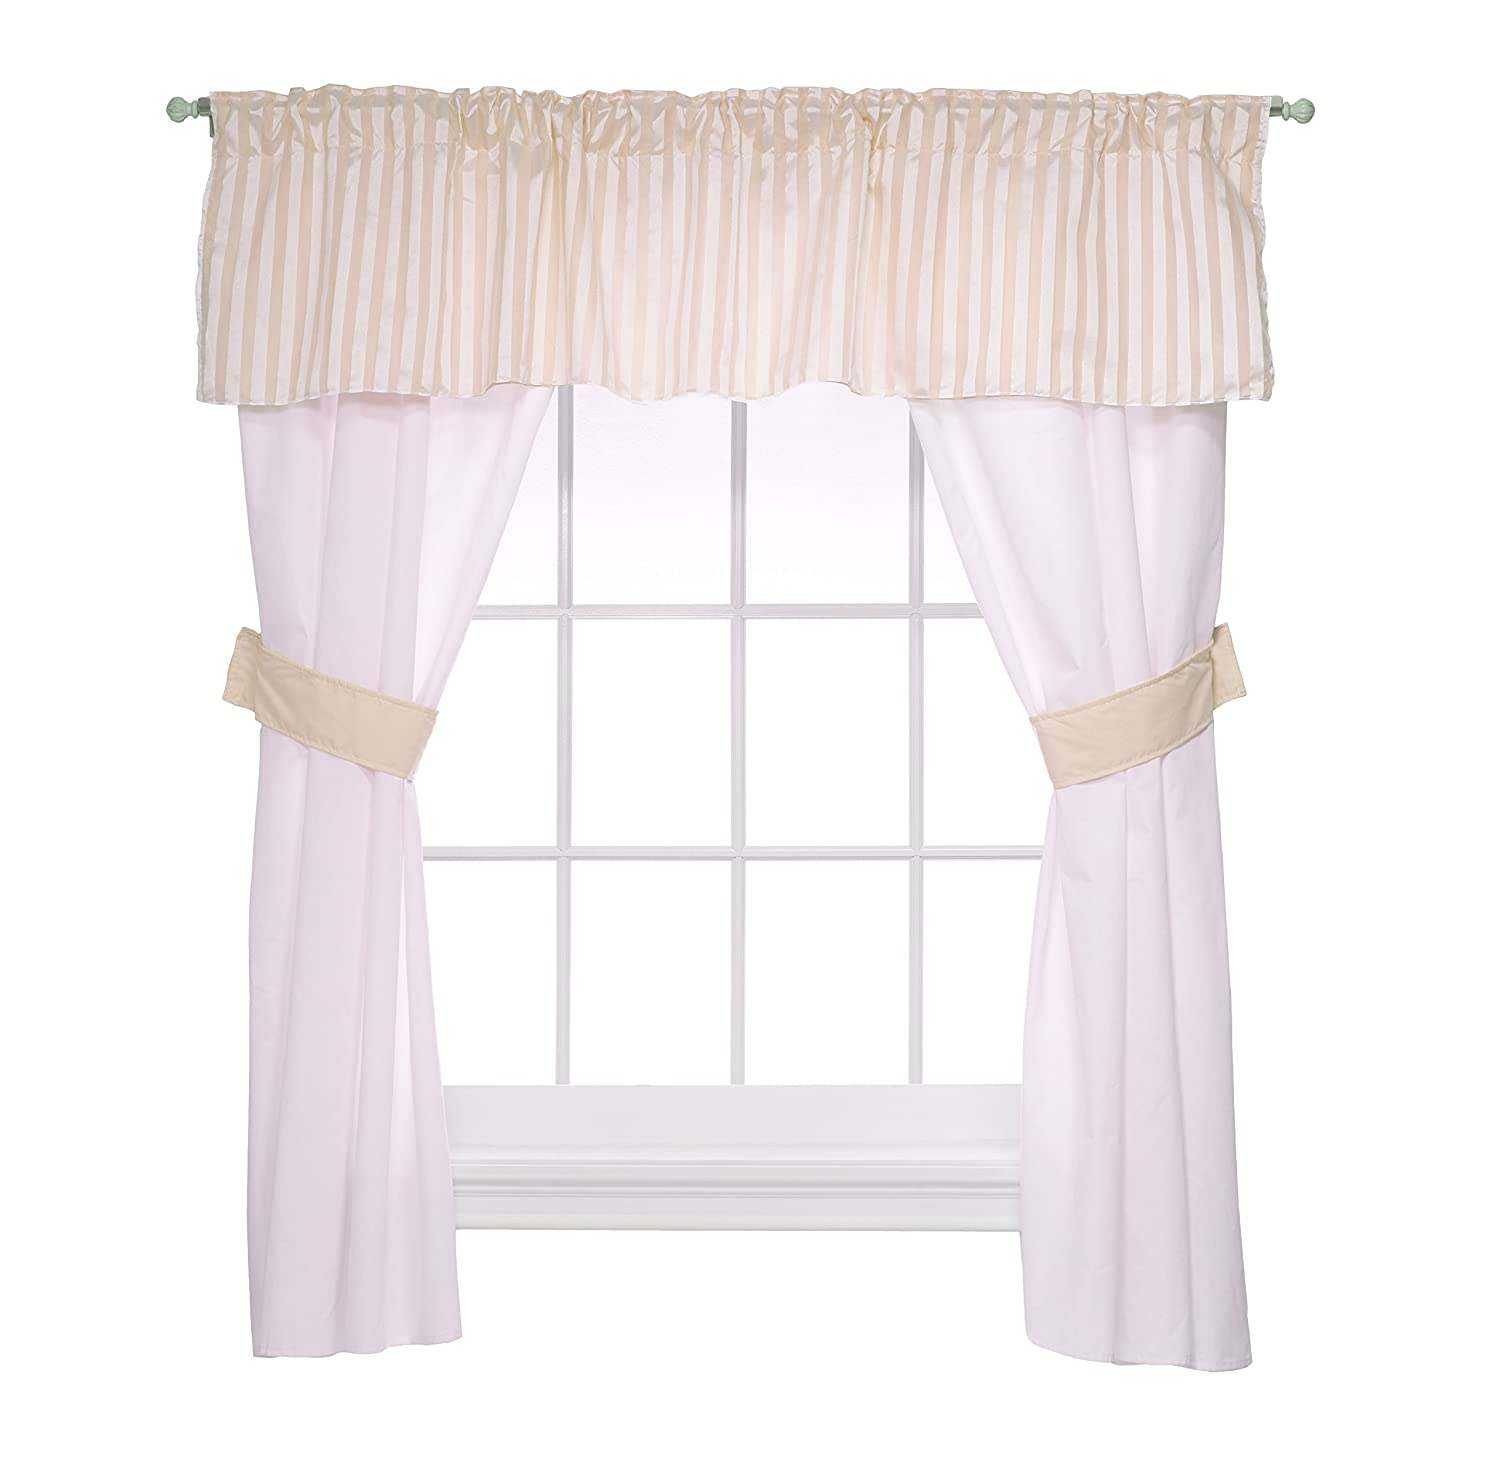 Baby Doll Candyland 5 Piece Window Valance and Curtain Set, Aqua Baby Doll Bedding 1300valc5-aqua